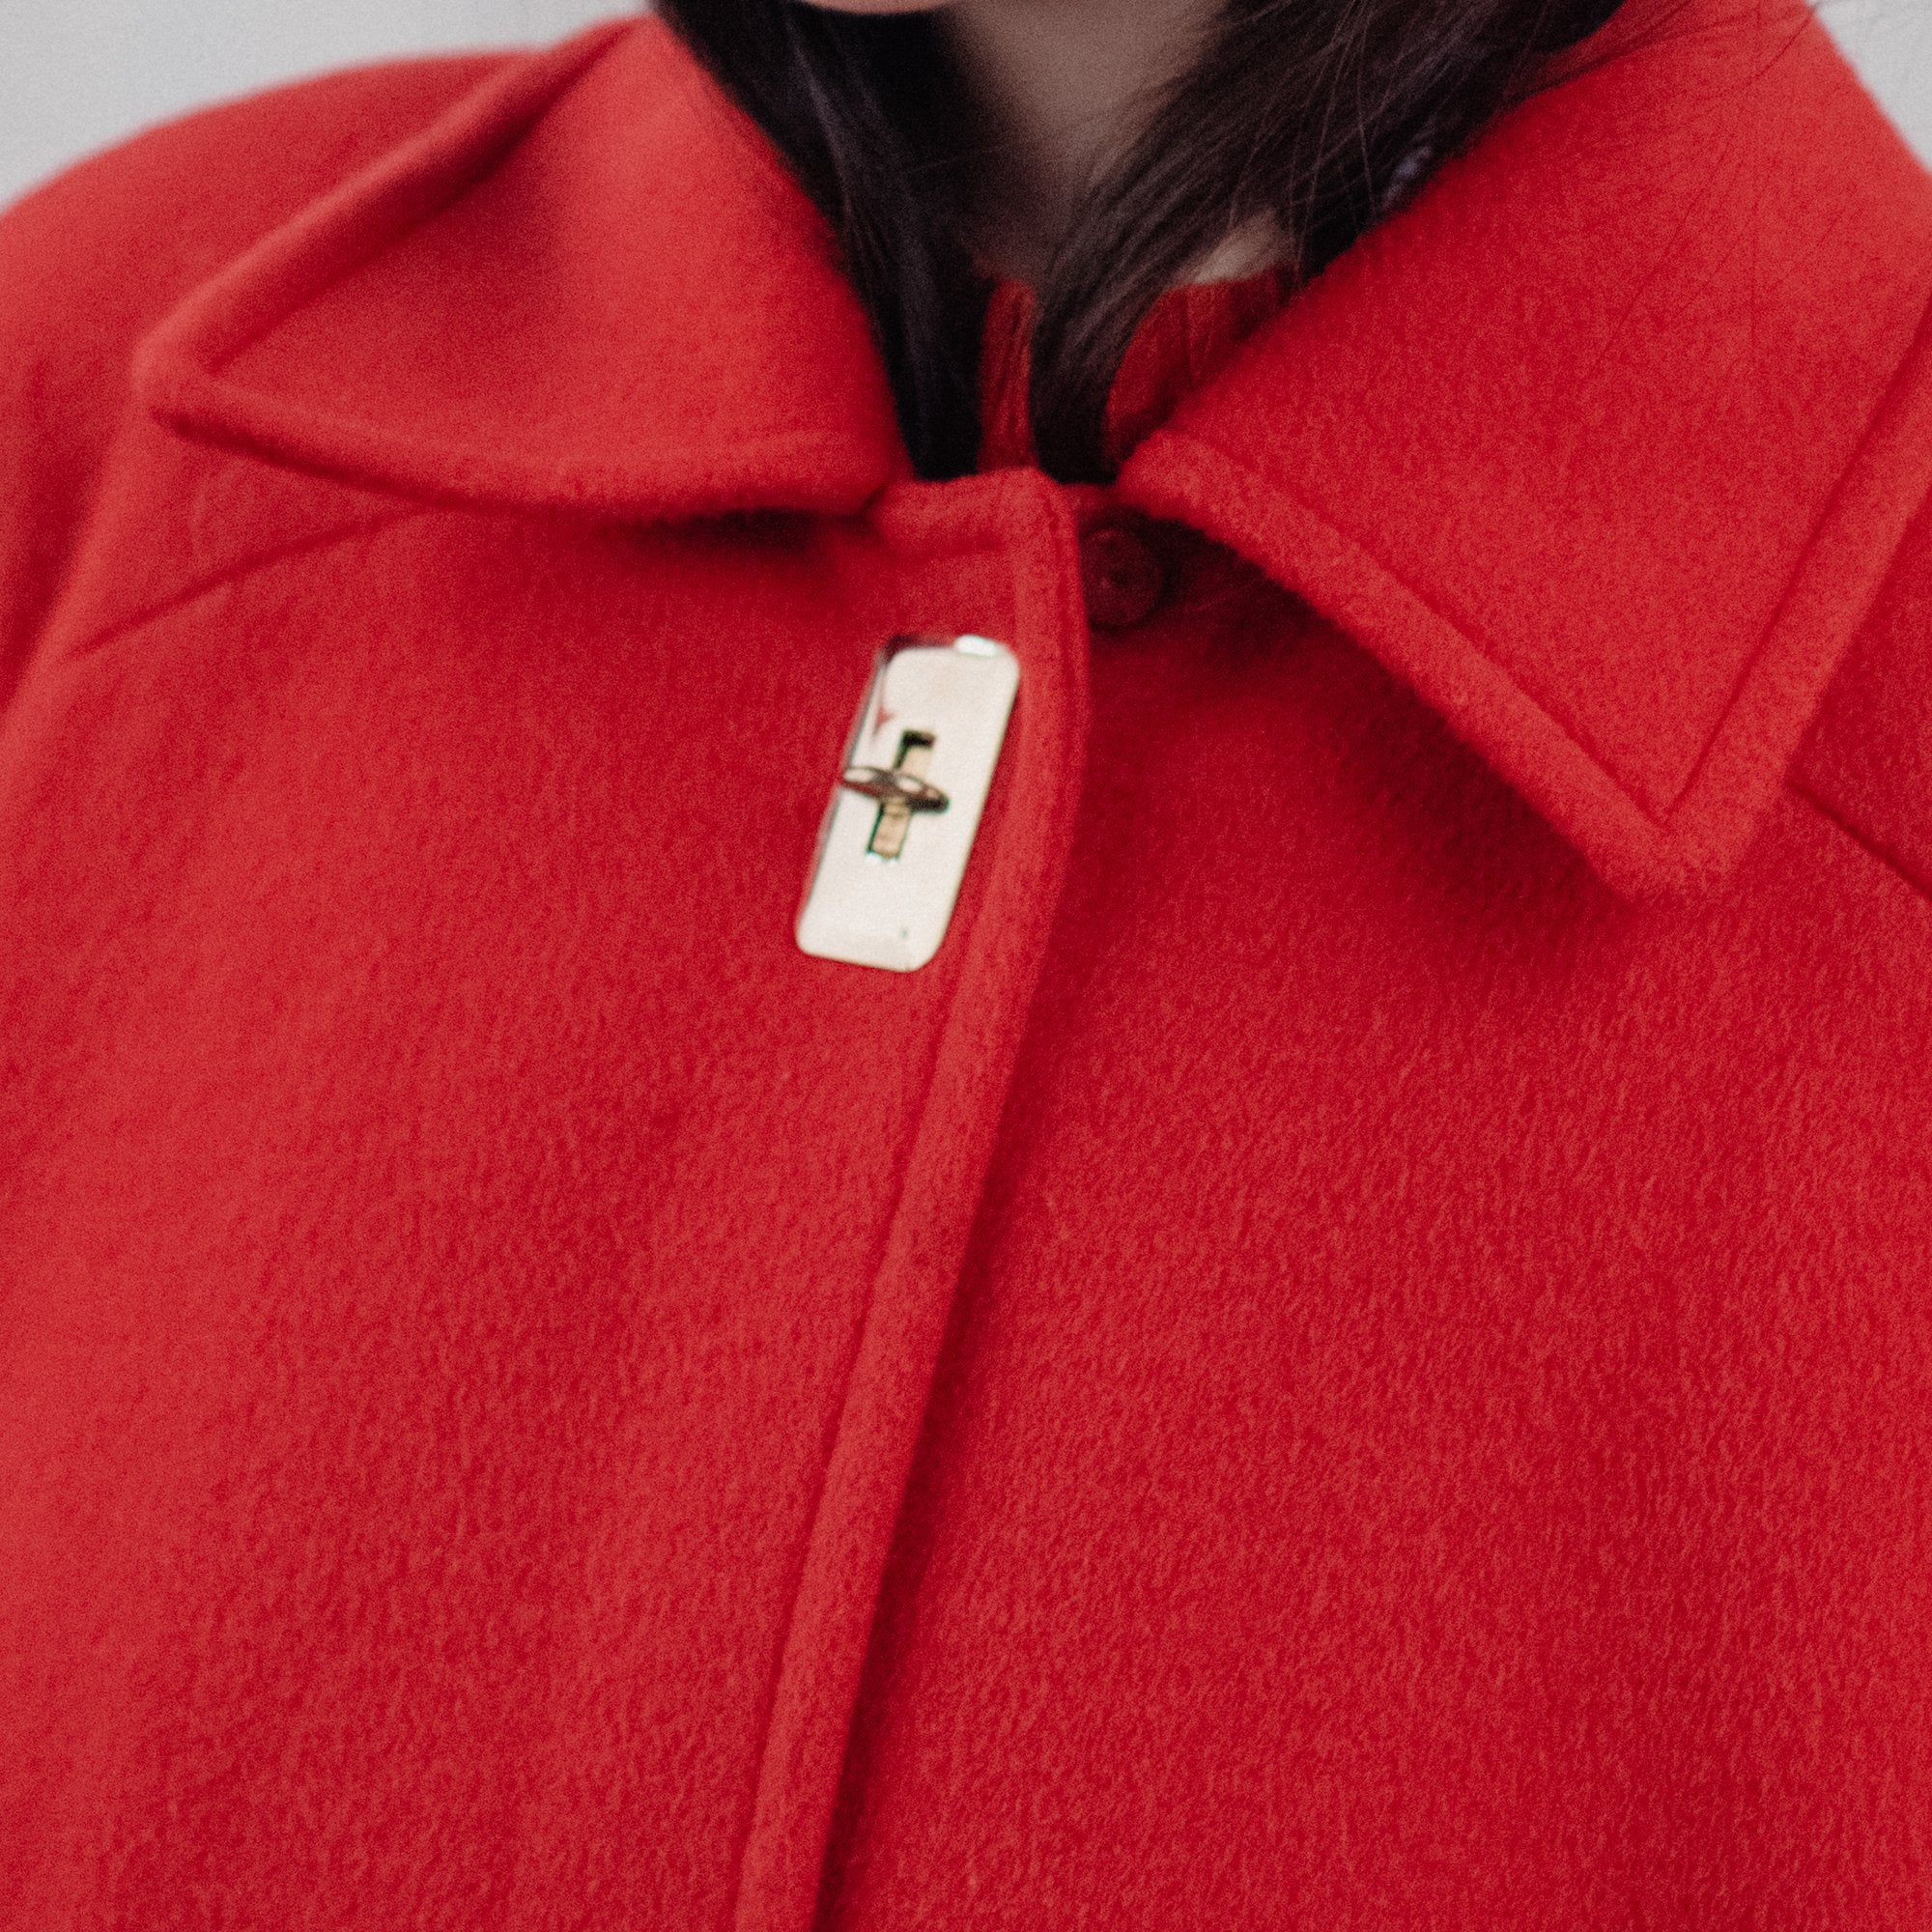 Vintage Oversized Cherry Red Wool Coat / S/M - Closed Caption